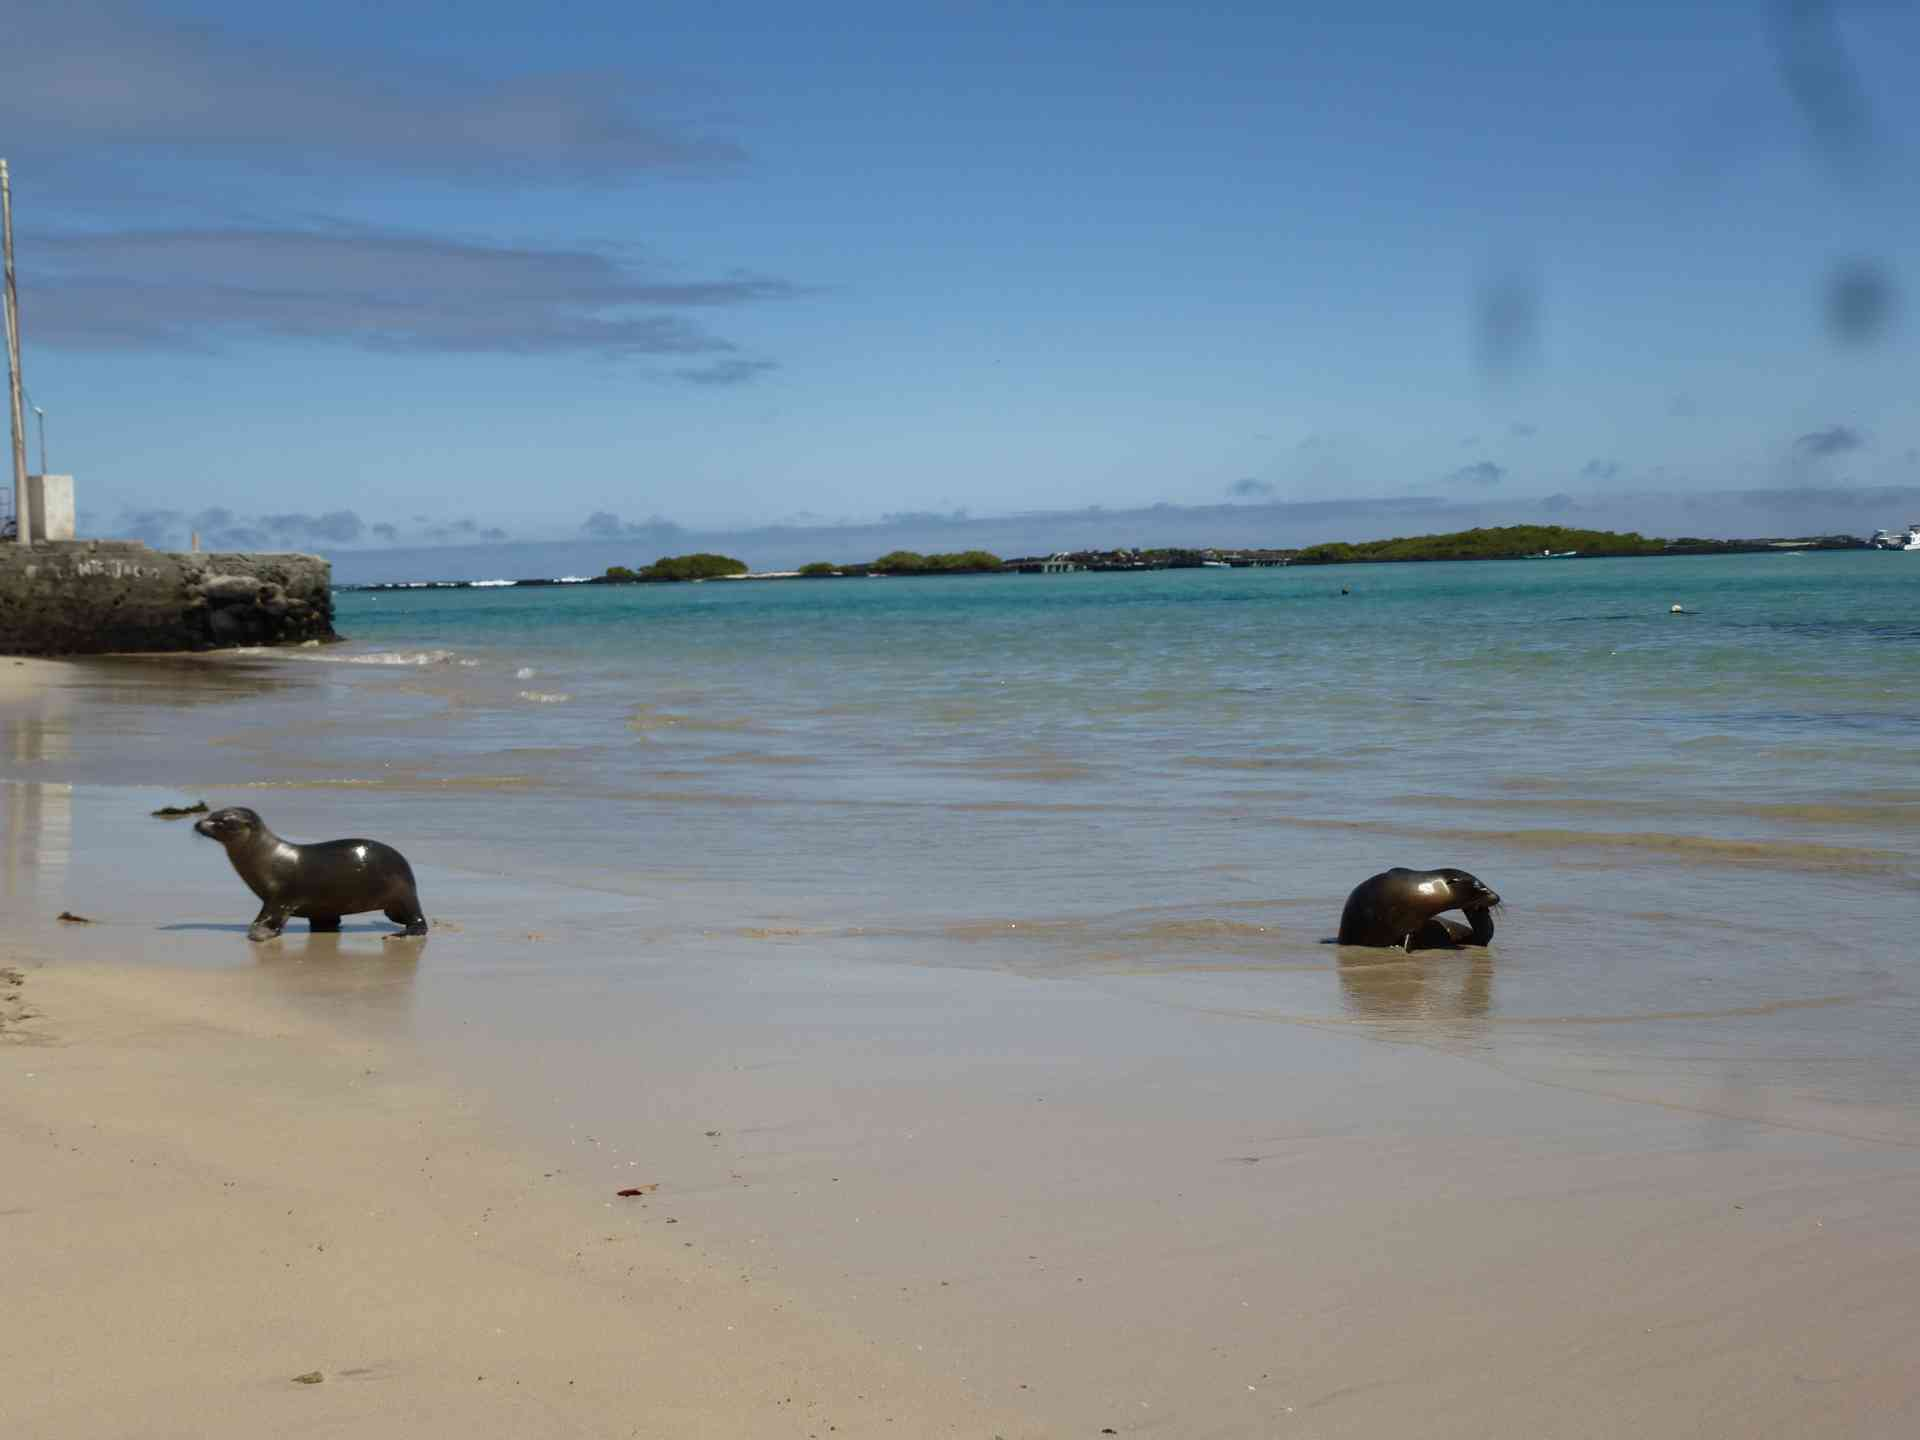 Sealions in the Galapagos Islands by Marion Bunnik